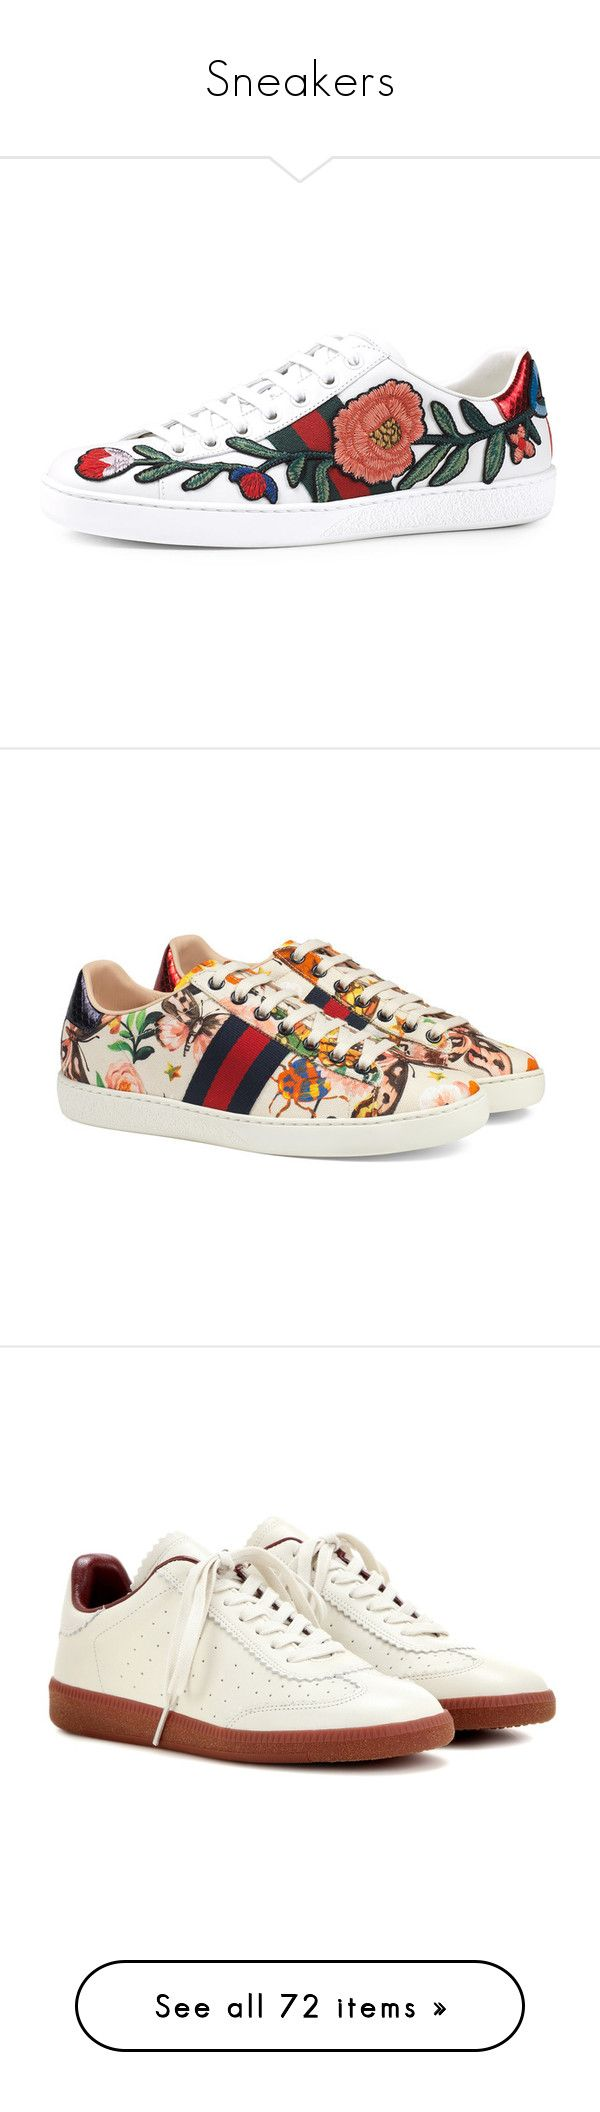 """""""Sneakers"""" by miriam83 ❤ liked on Polyvore featuring shoes, sneakers, gucci, flats, white, white leather sneakers, gucci sneakers, white leather shoes, white low top sneakers and white flat shoes"""